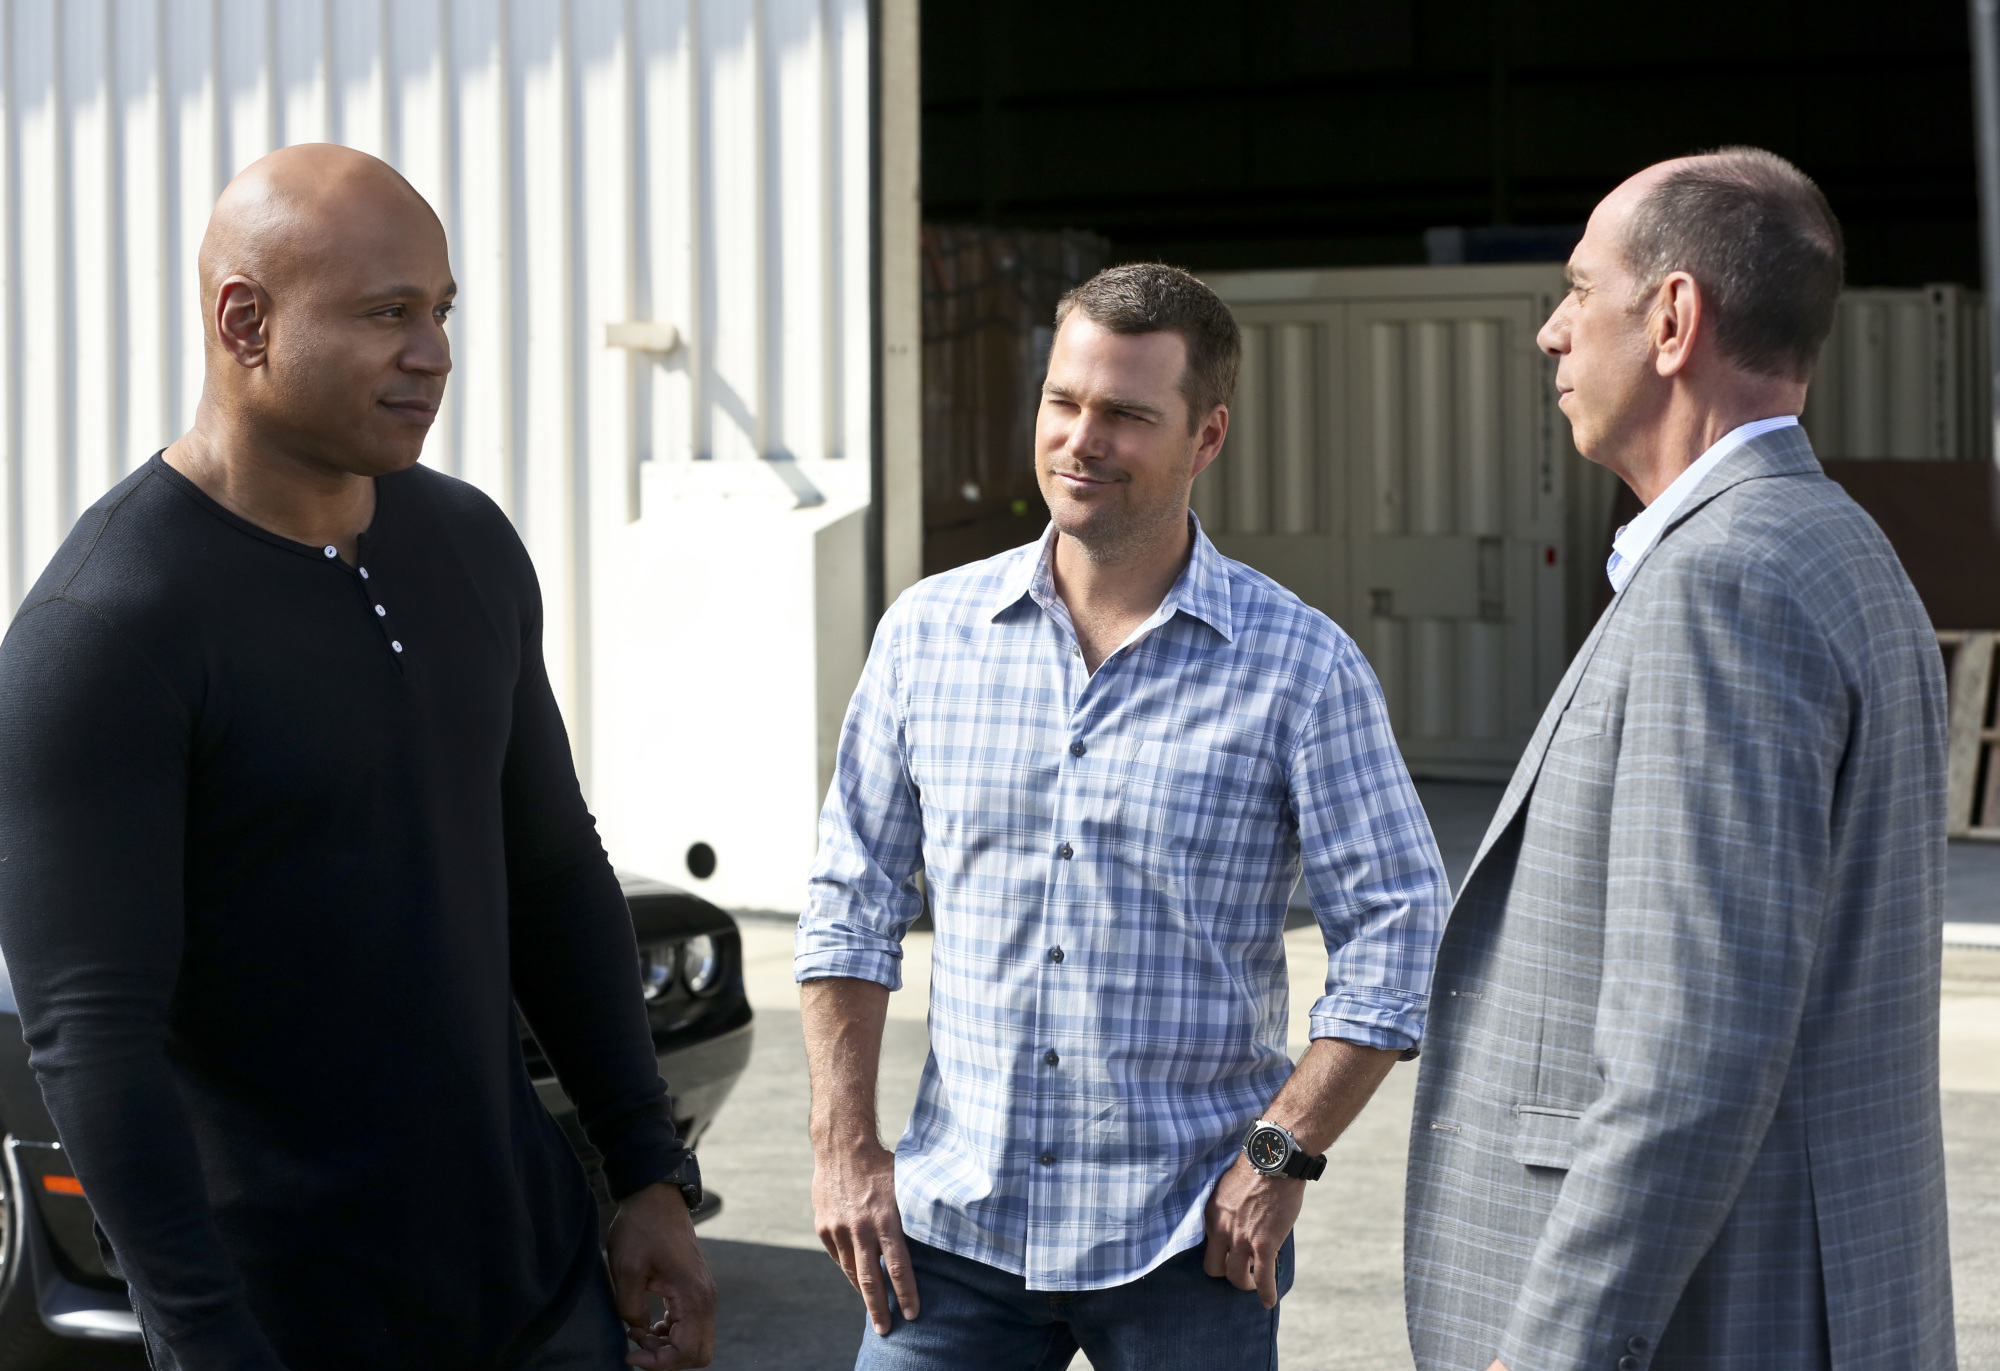 LL COOL J as Special Agent Sam Hanna, Chris O'Donnell as Special Agent G. Callen, and Miguel Ferrer as NCIS Assistant Director Owen Granger